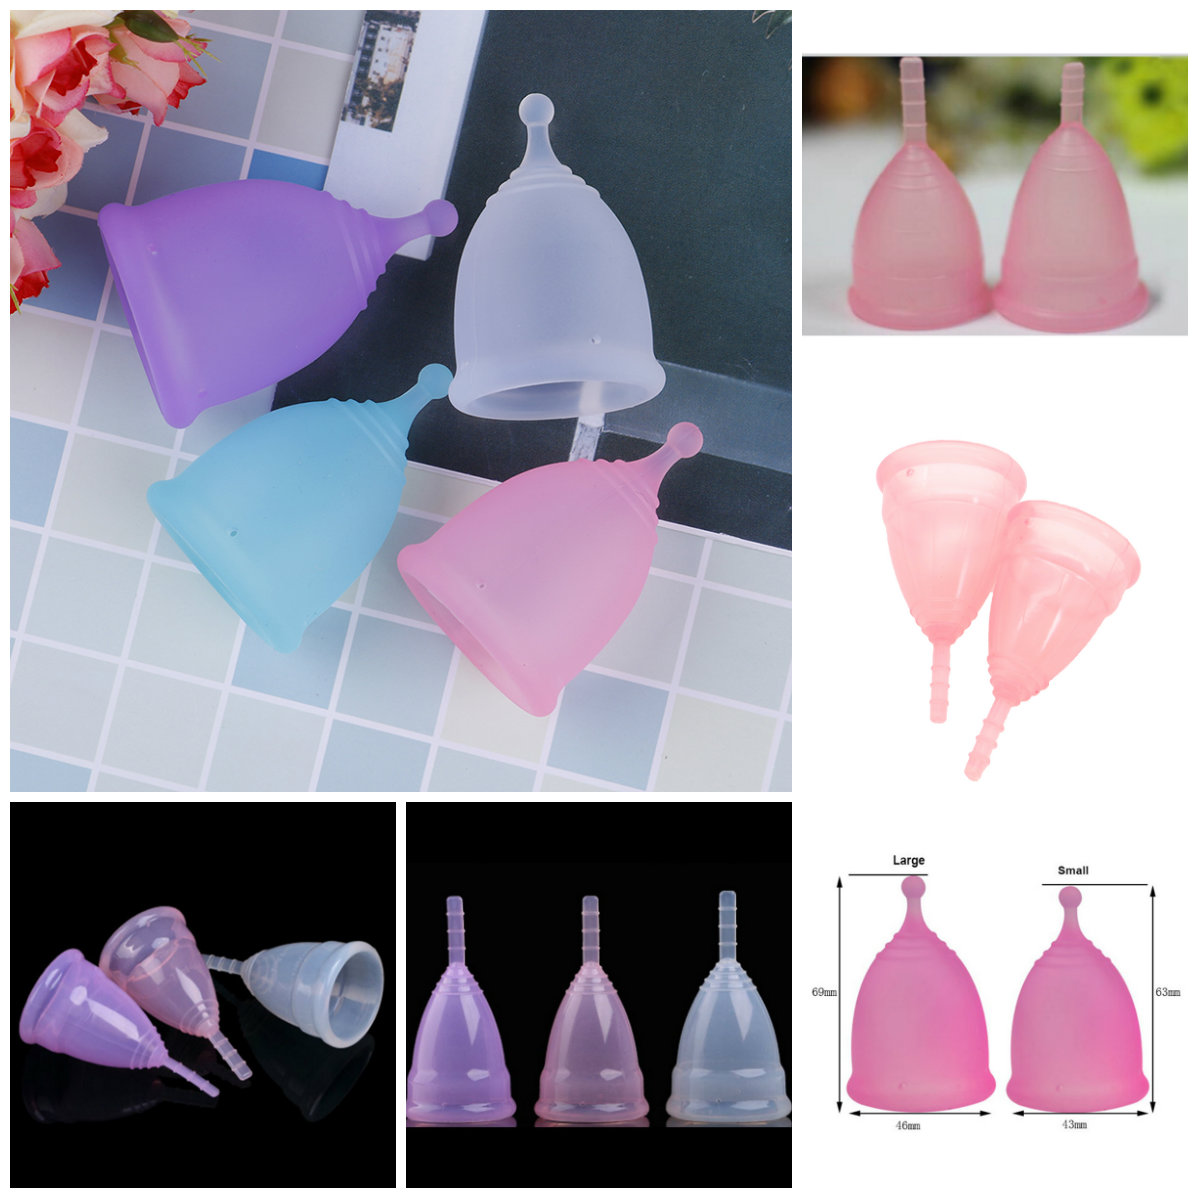 1Pcs Medical Grade Silicone Menstrual Cup for Women Feminine Hygine Product Health Care Menstrual Cup